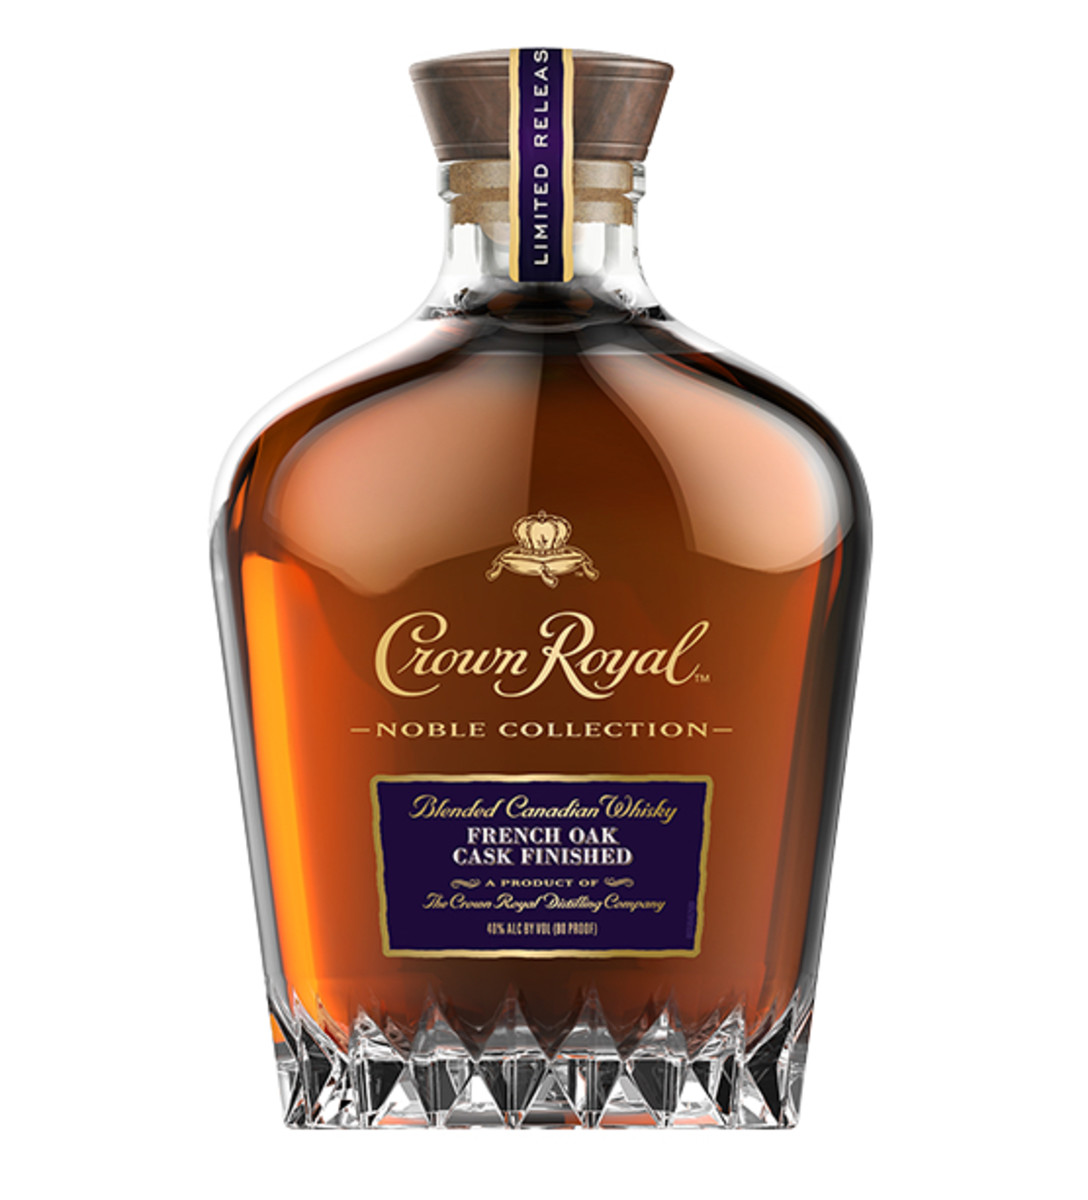 Crown Royal Noble Collection French Oak Cask Finished